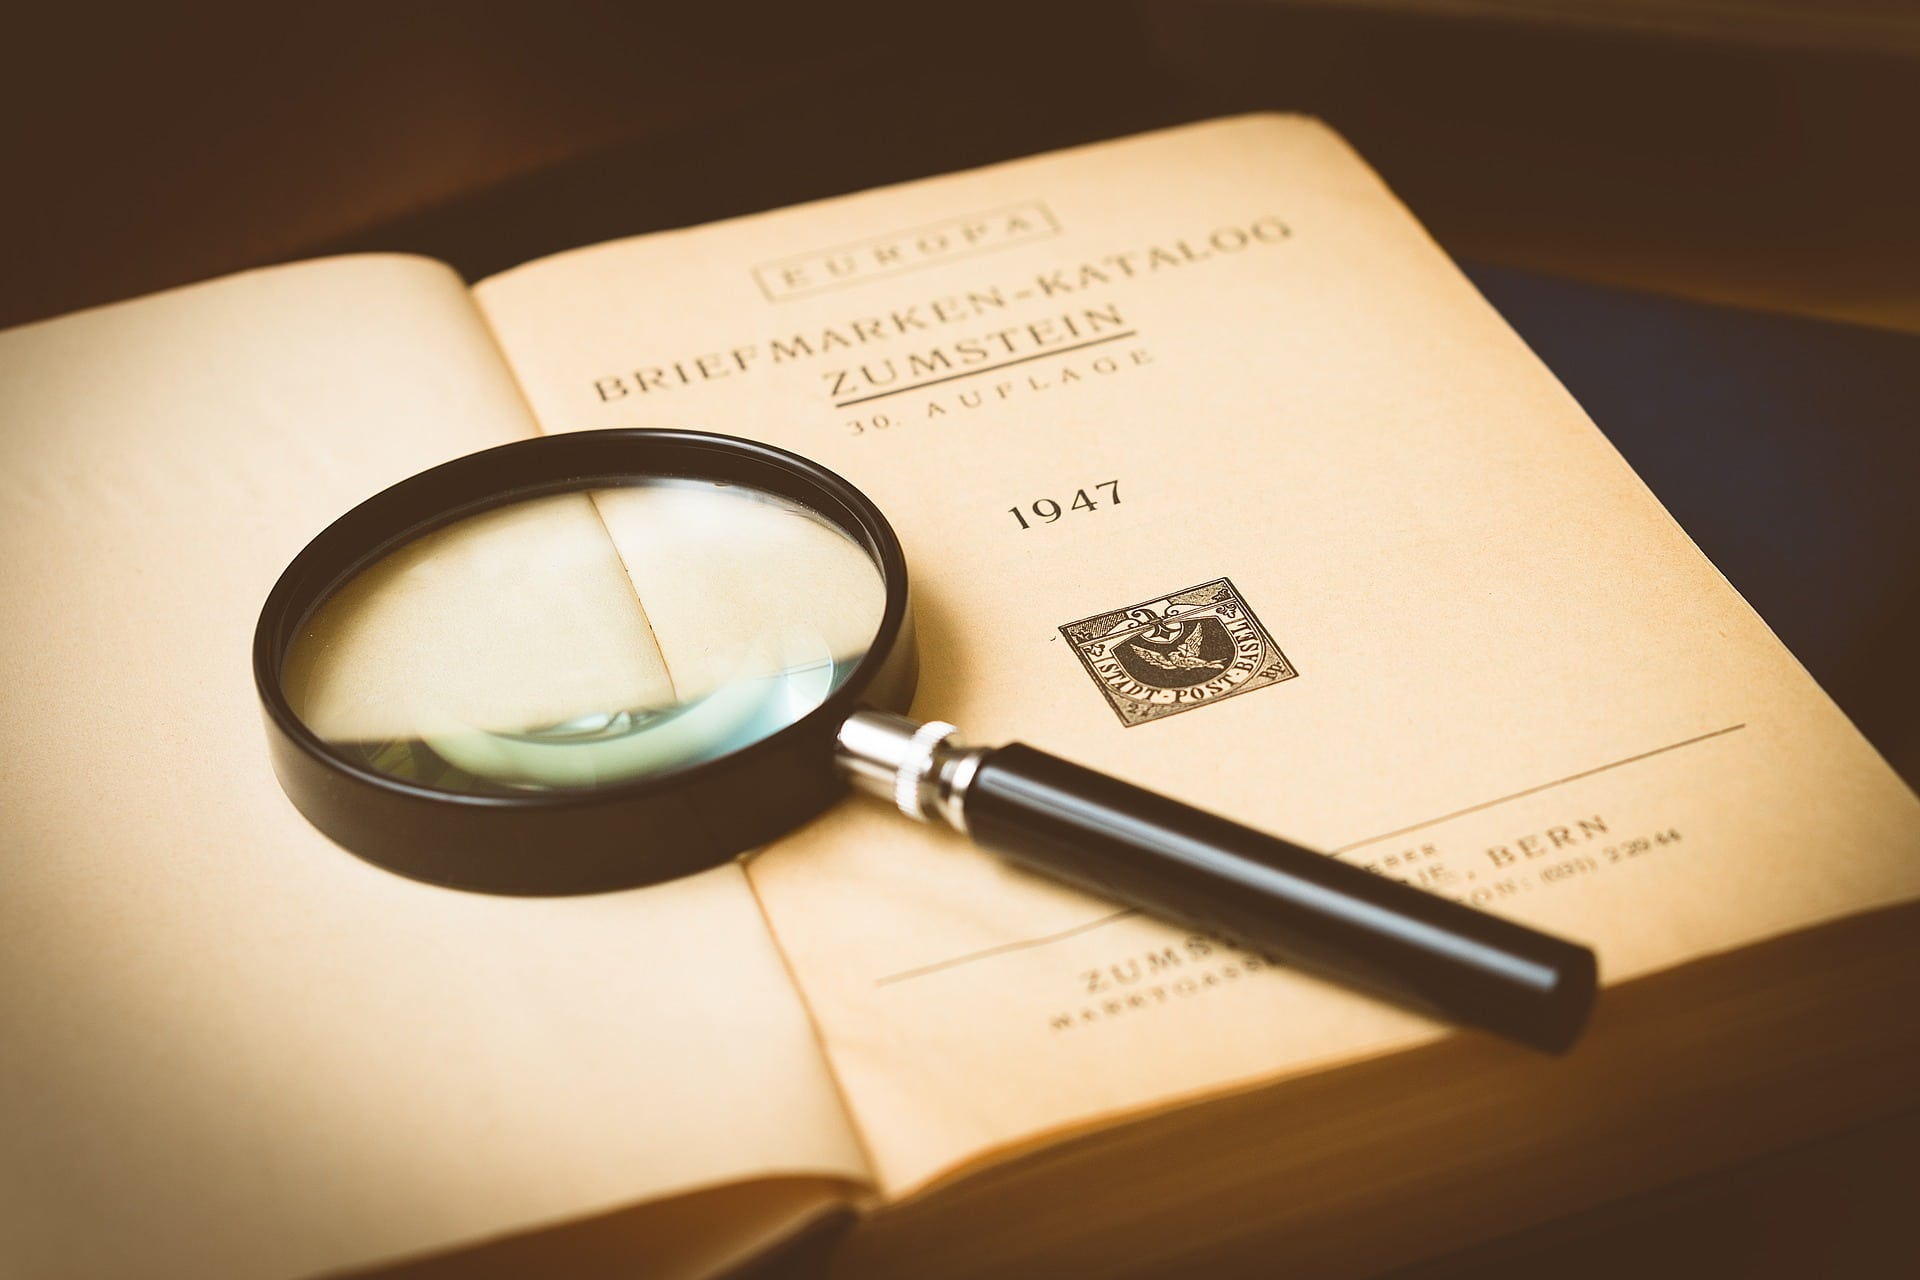 elements of a crime - magnifying glass resting on an open book